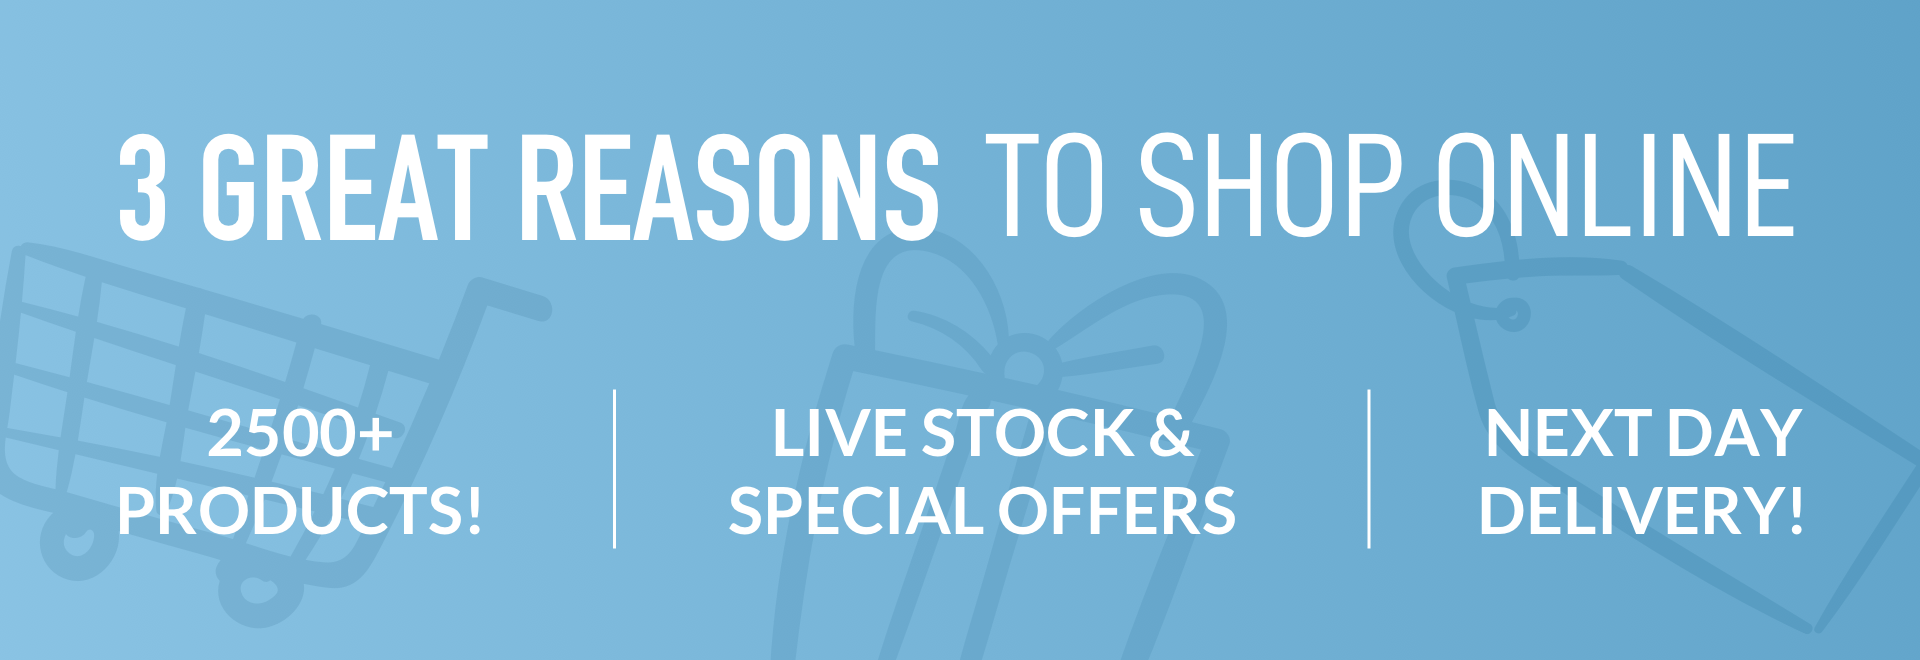 3 great reasons to shop online. 2500+ products, live stock and special offers, next day delivery.